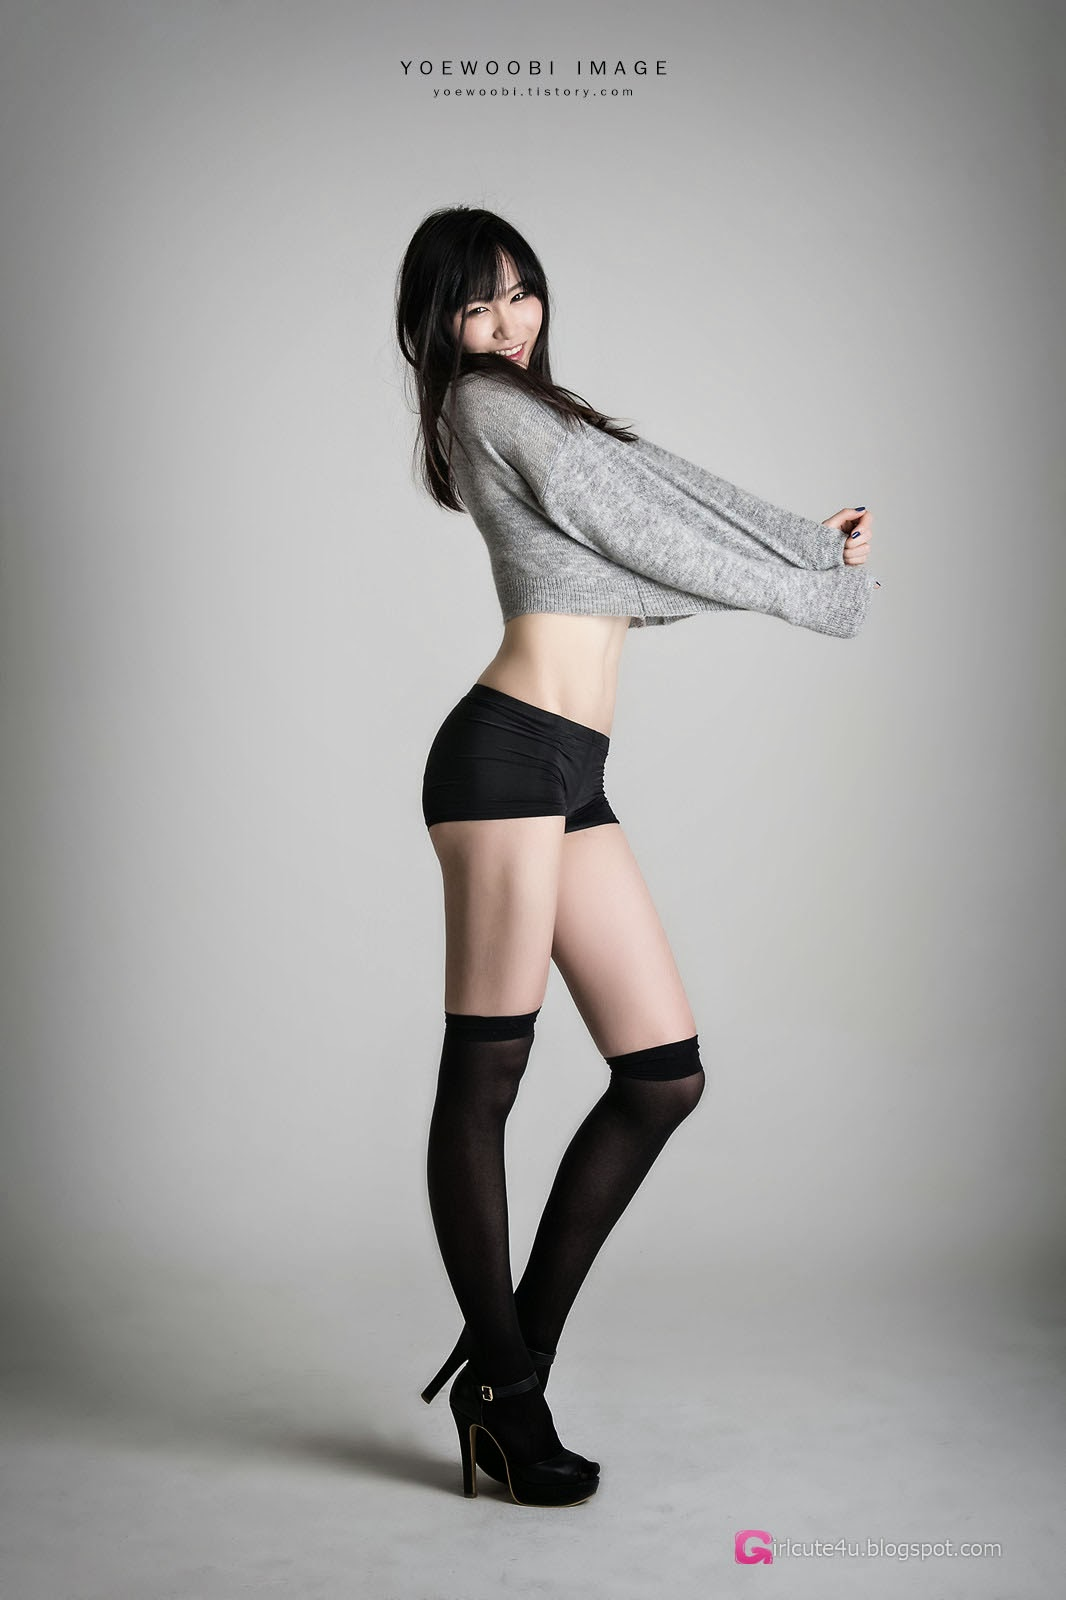 5 Kim Mi Jin - New Model - very cute asian girl-girlcute4u.blogspot.com